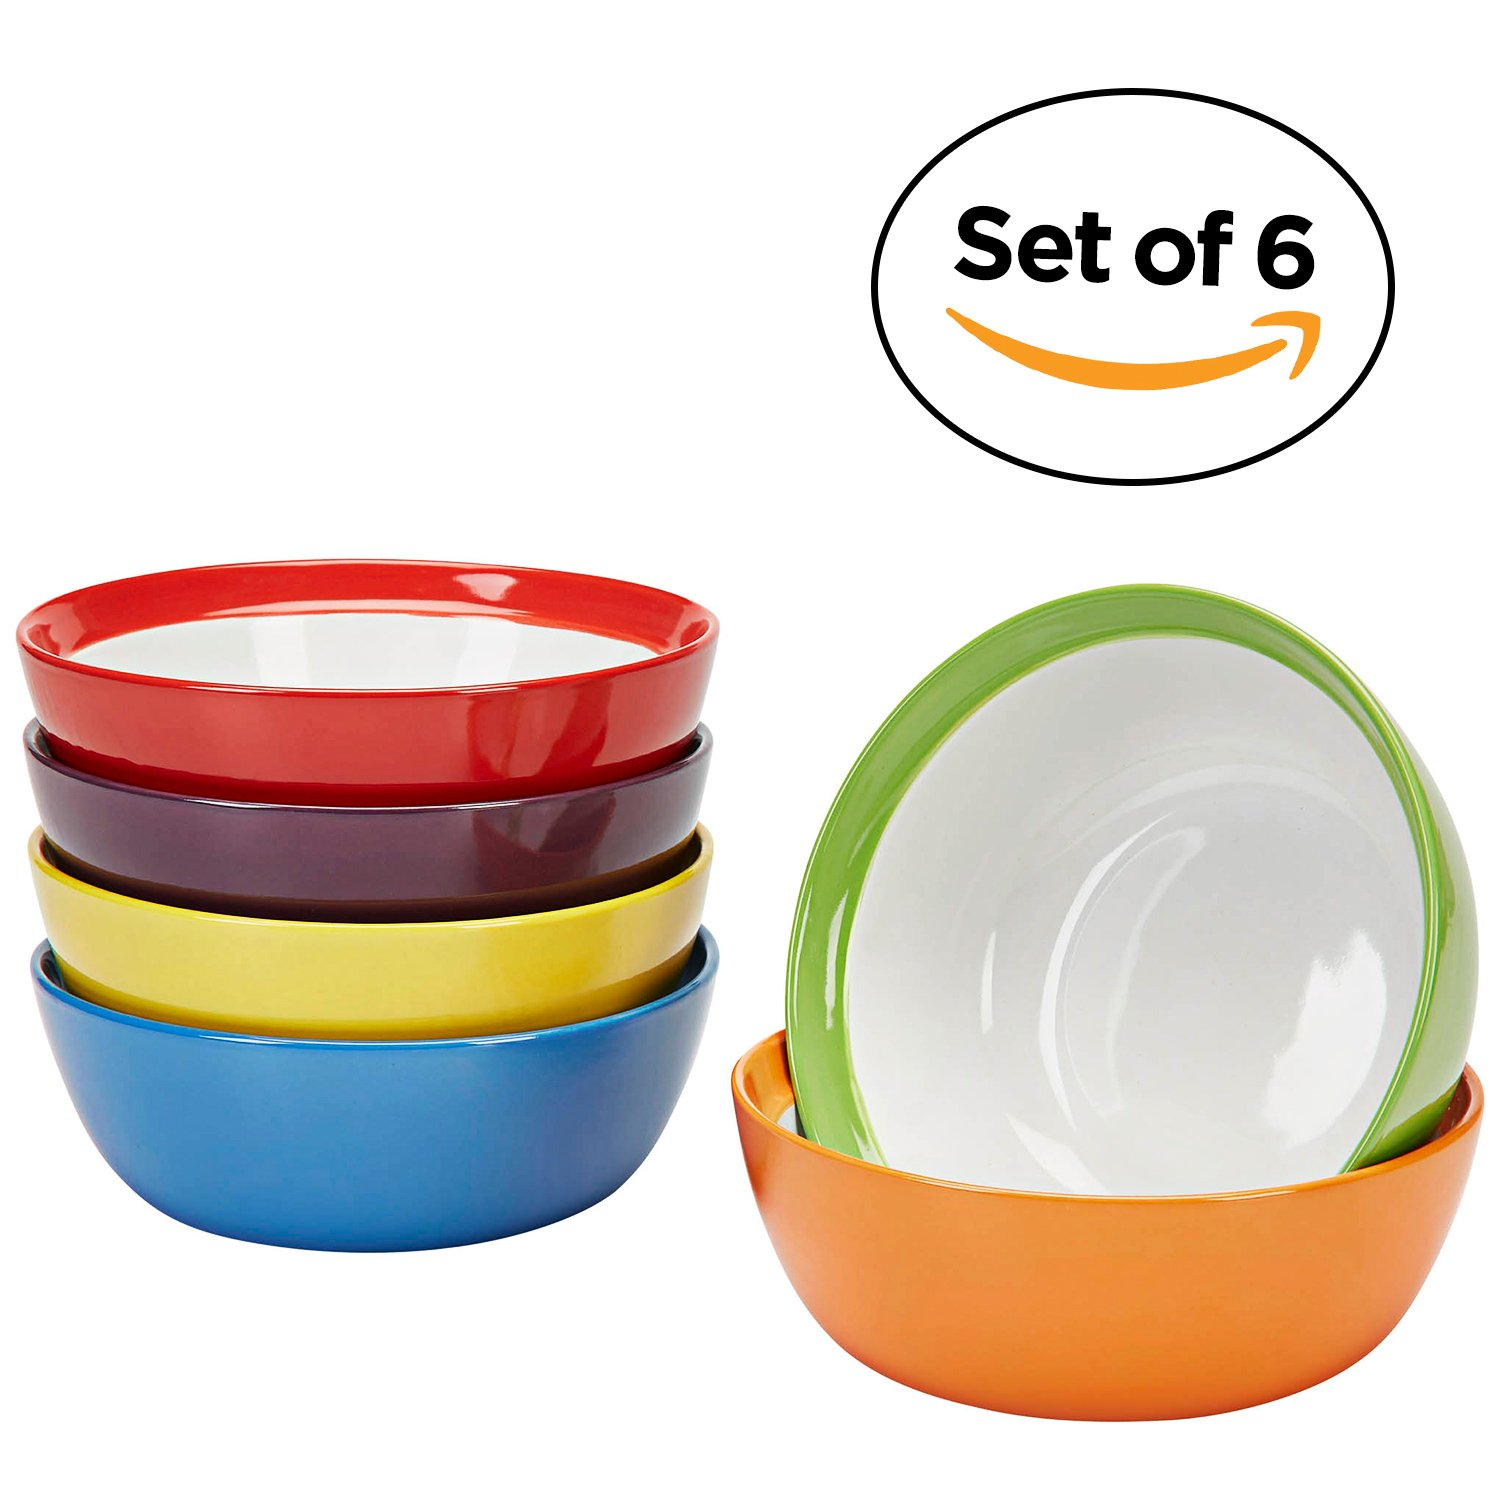 Premium Ceramic Set of 6, Colorful Meal Stoneware (Breakfast Bowls) 06-00036-01